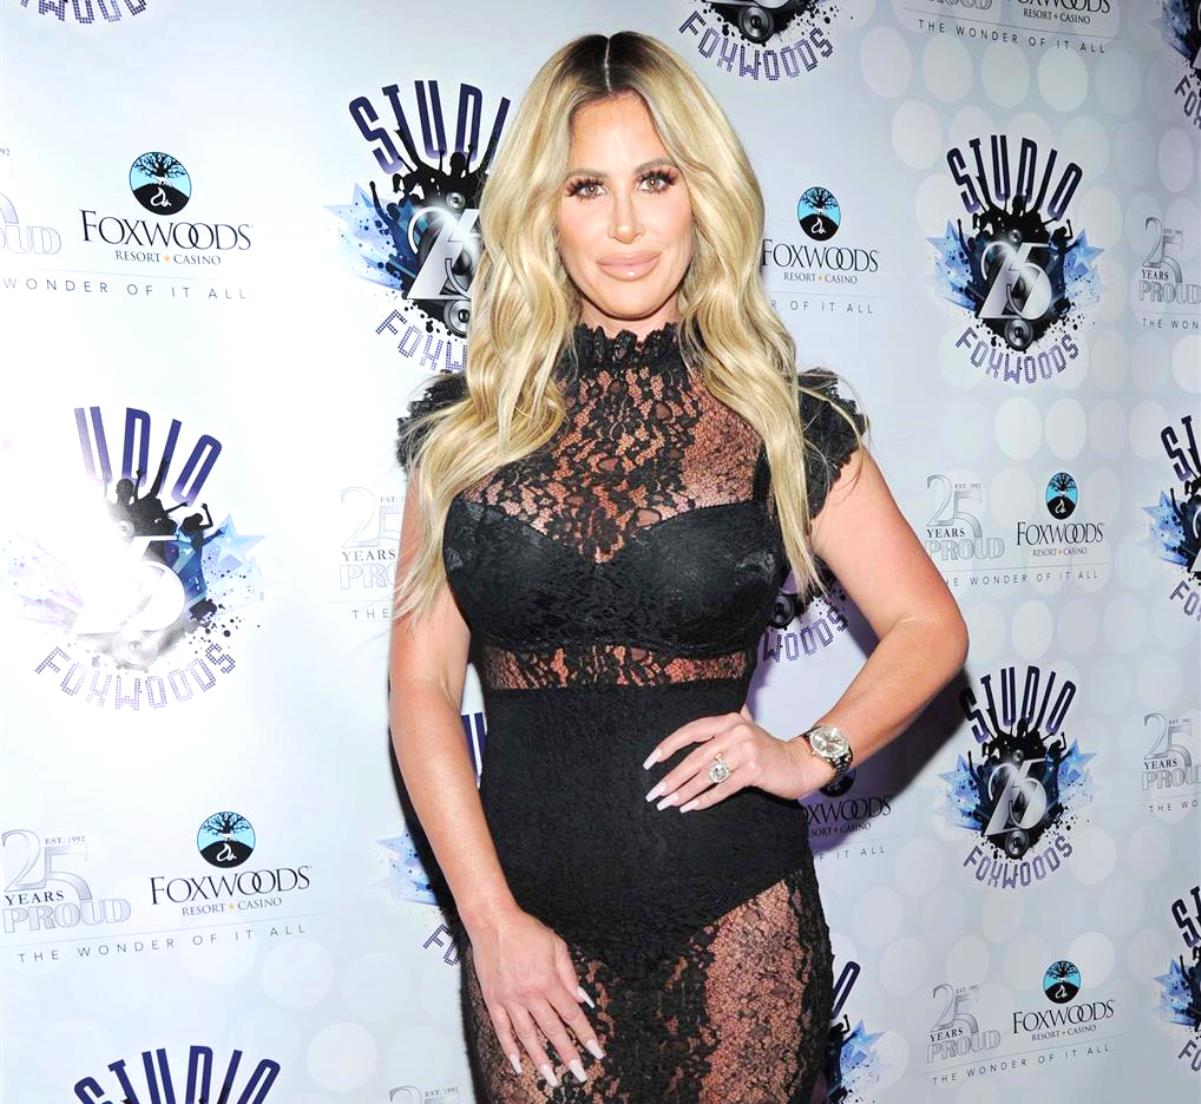 Don't Be Tardy's Kim Zolciak Ordered To Pay $215,000 After Lawsuit By American Express Over Unpaid Credit Card Debt